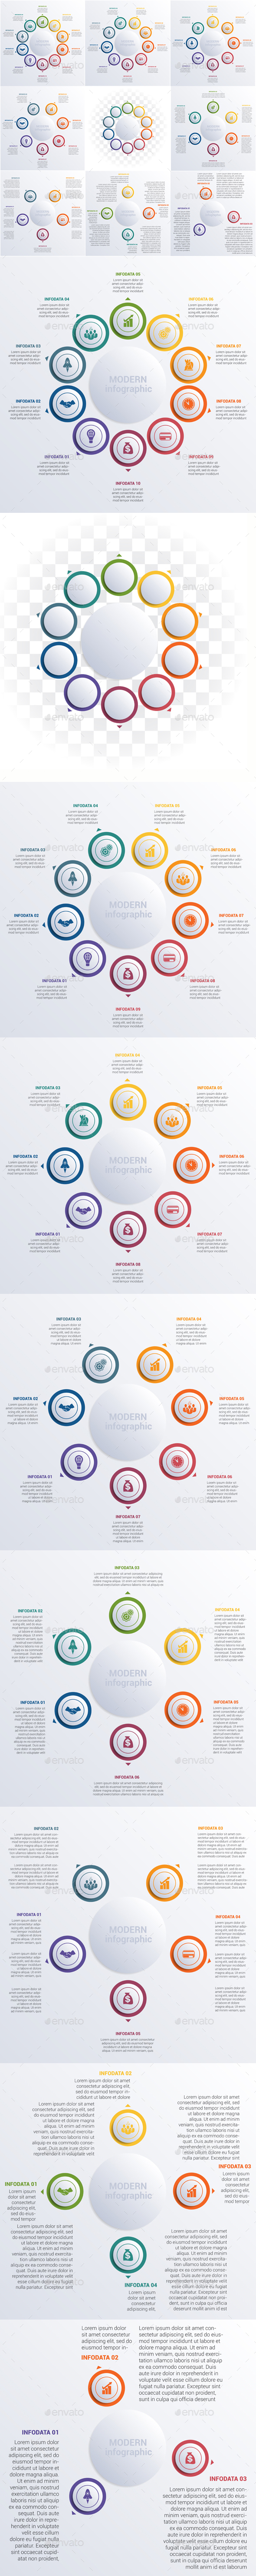 Modern Infographic diagram business steps for 3,4,5,6,7,8,9,10 options.